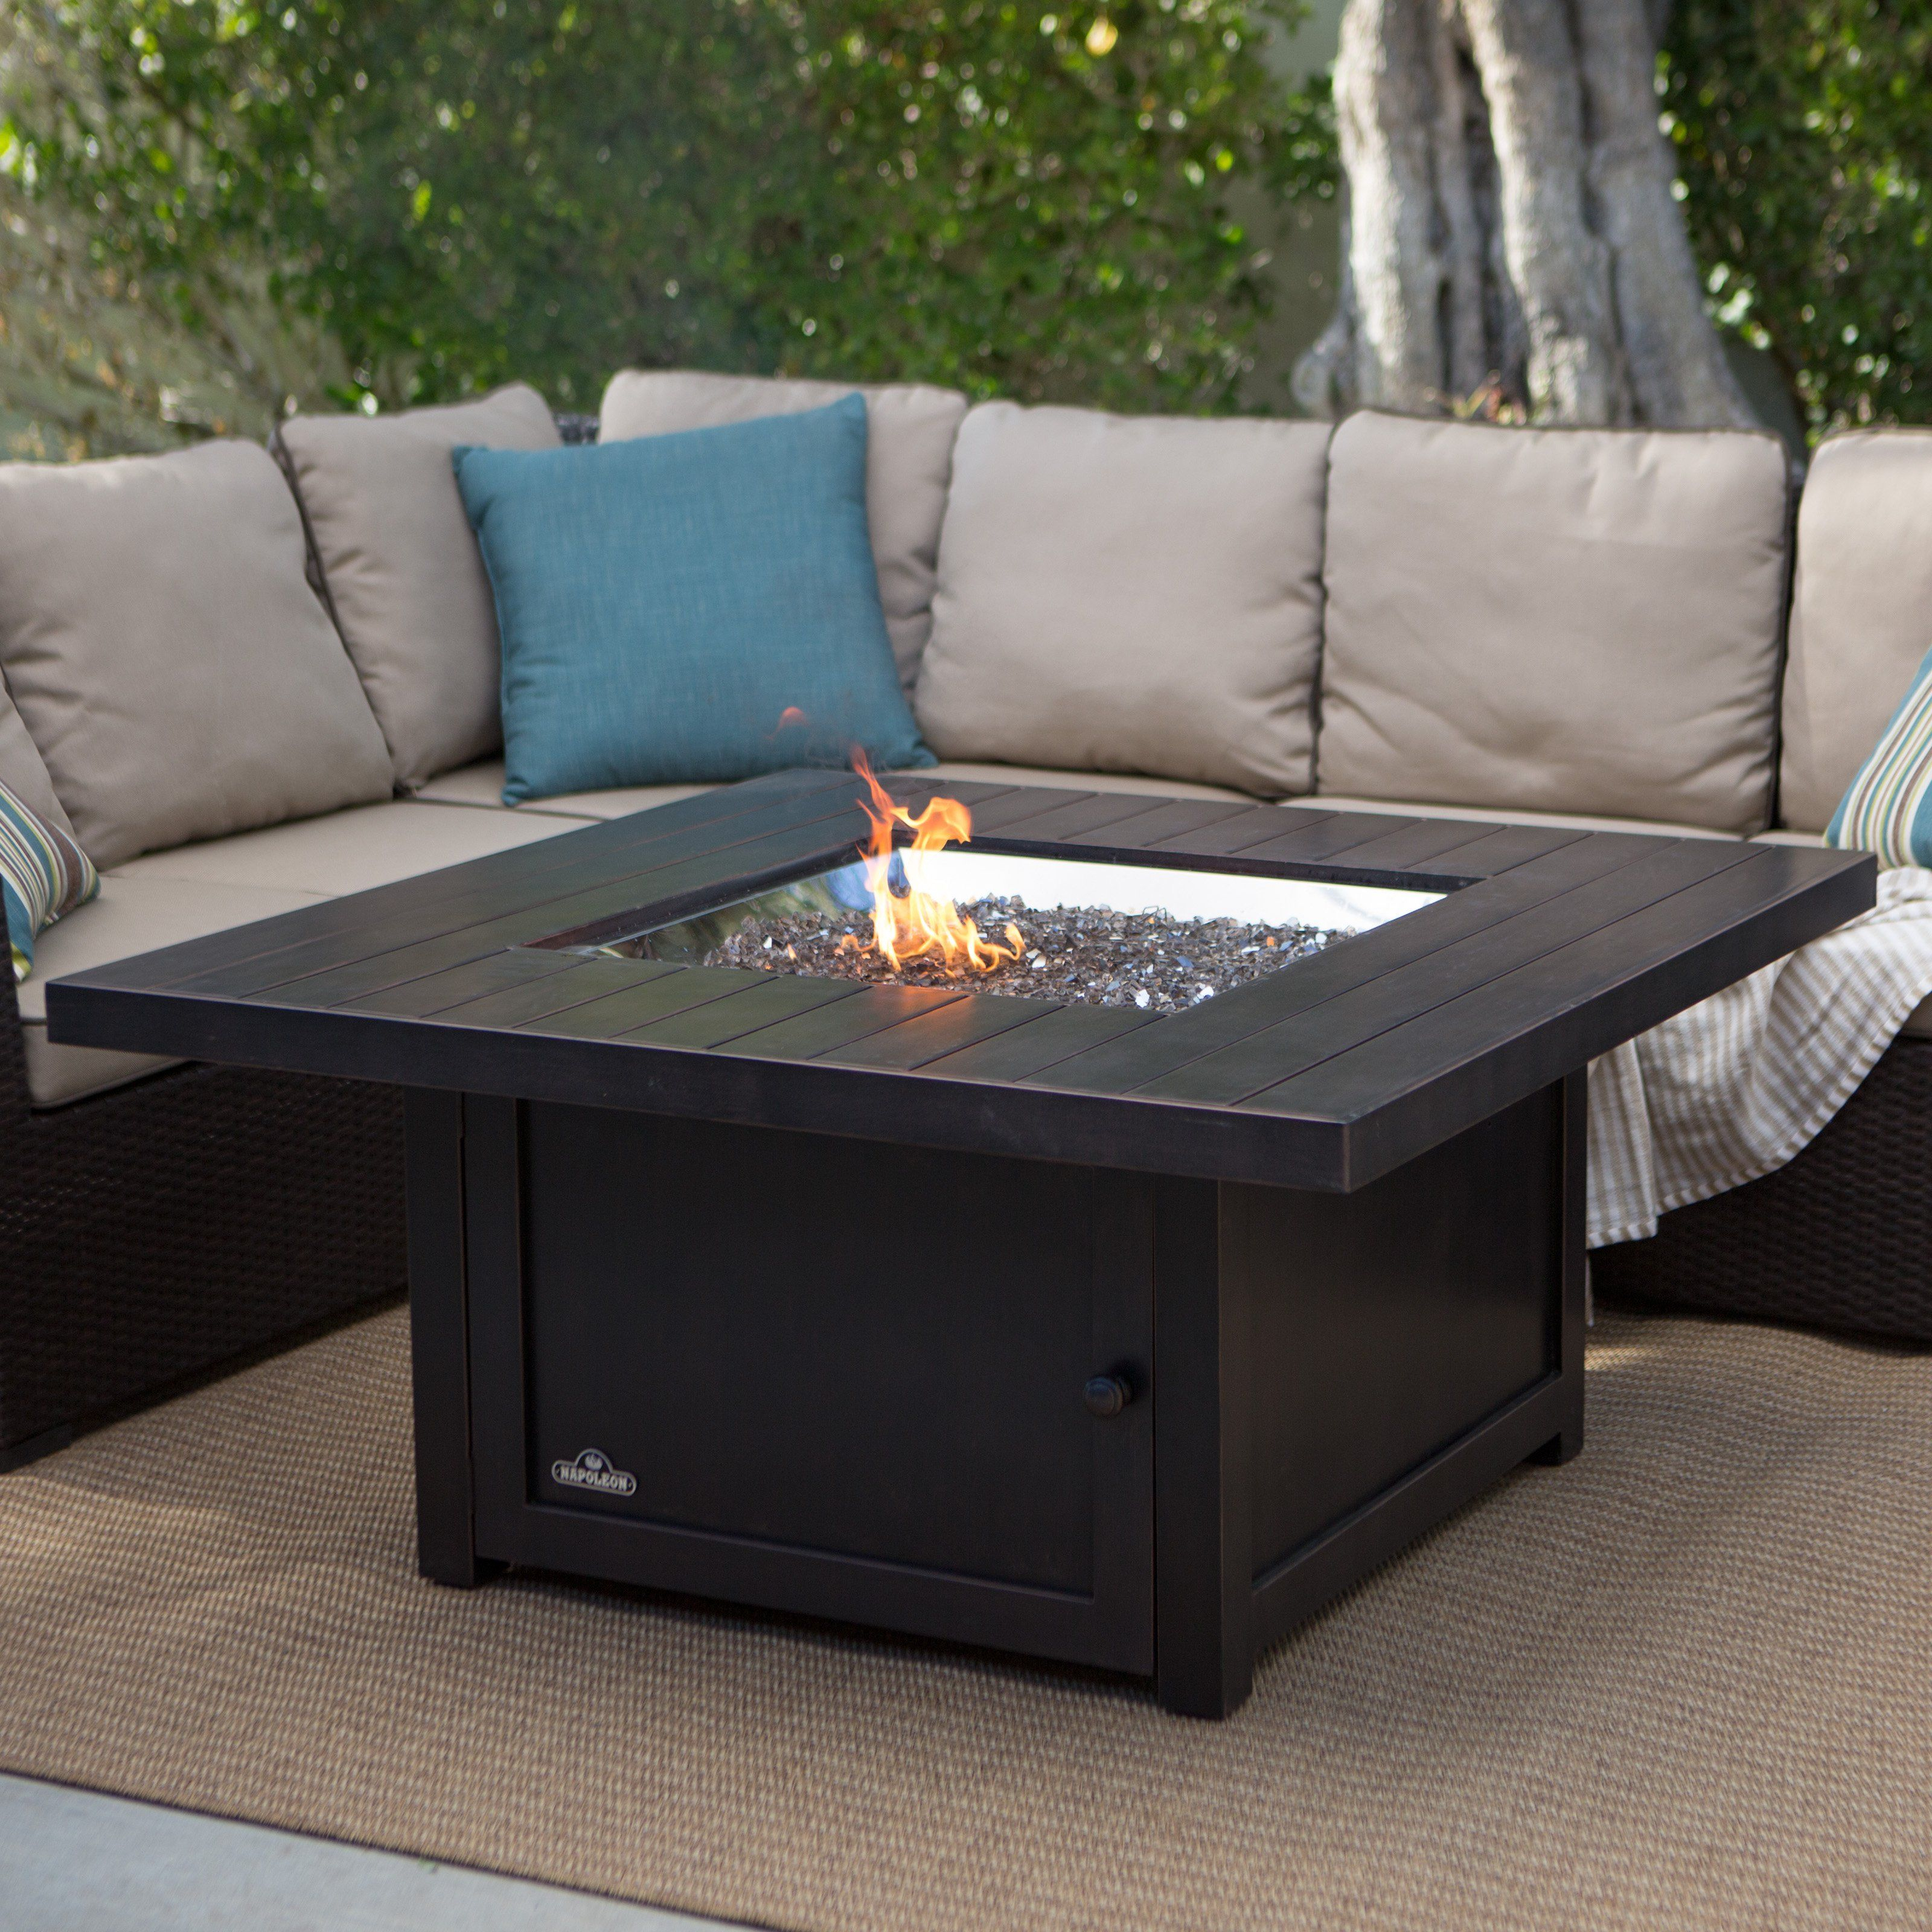 Napoleon Square Propane Fire Pit Table Turn The Party Up A Notch throughout measurements 3200 X 3200